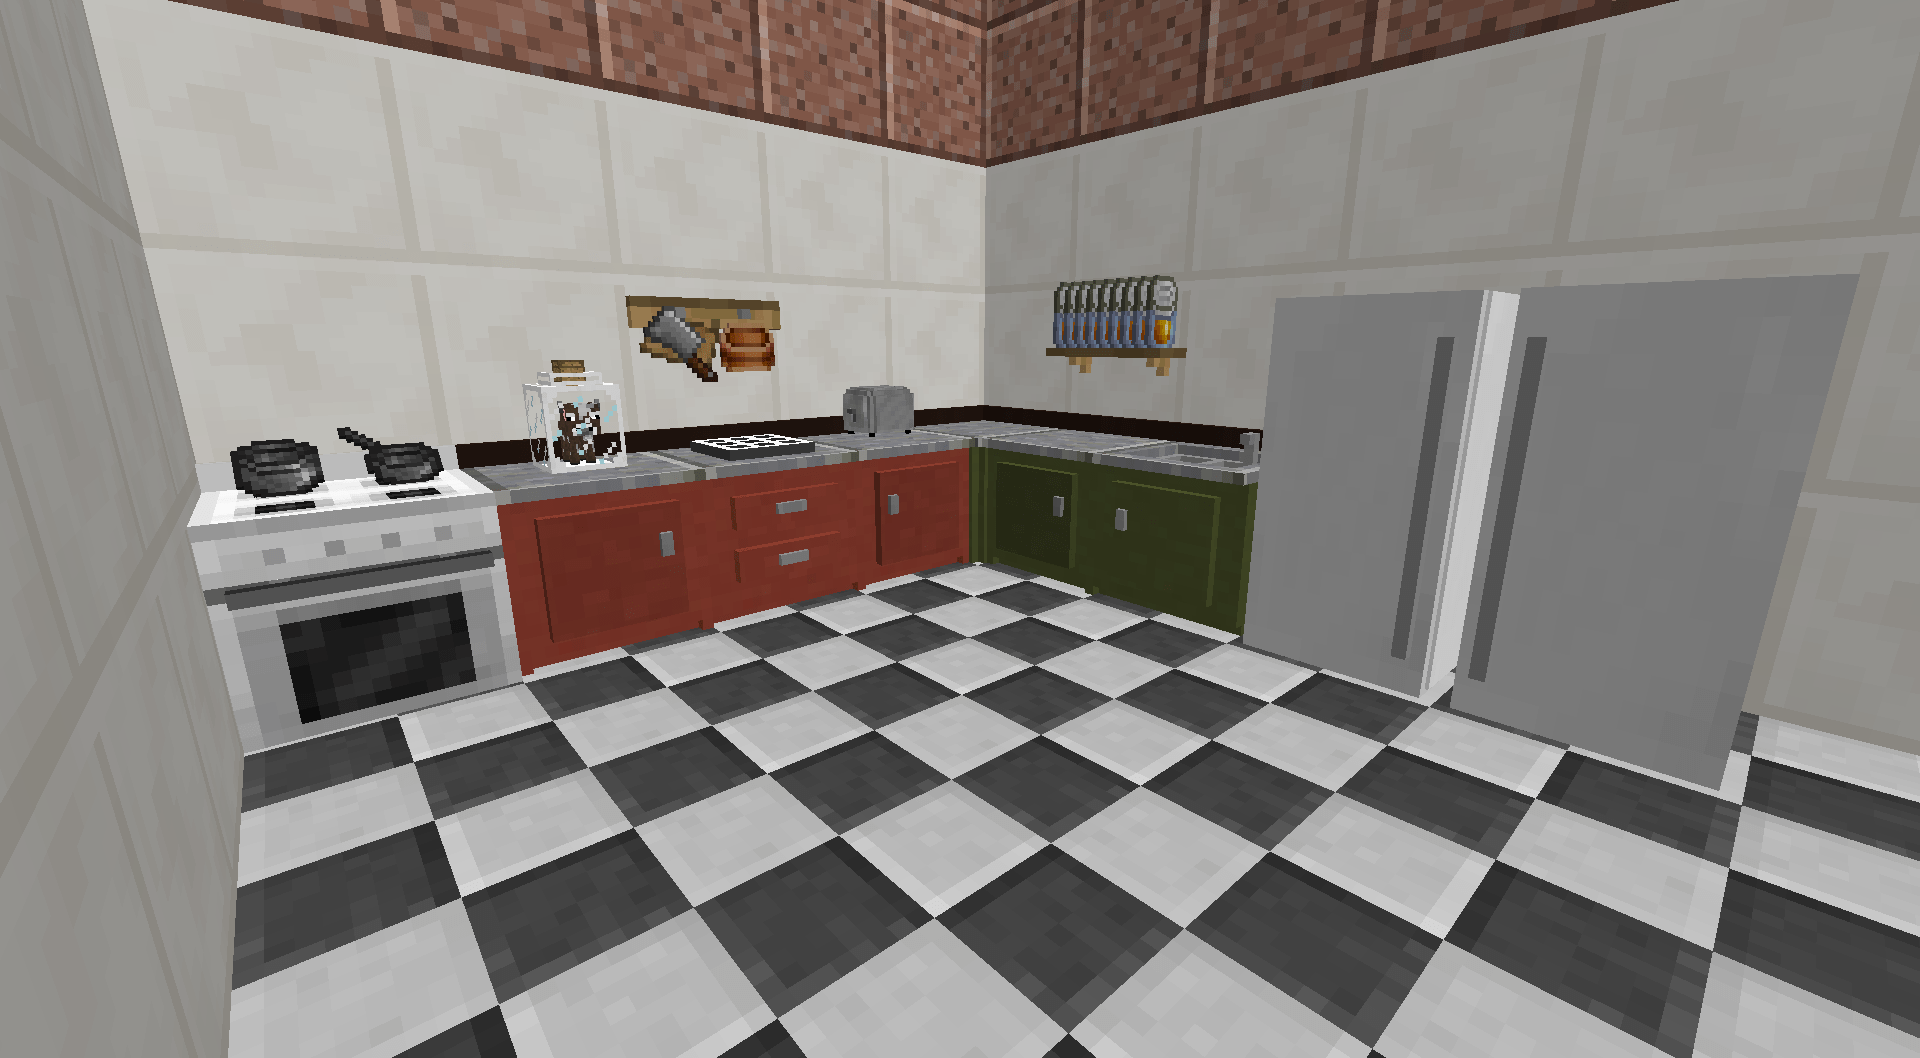 Minecraft Kitchen Mod 1.12.2 1 12 Cooking For Blockheads Mod Download Minecraft Forum